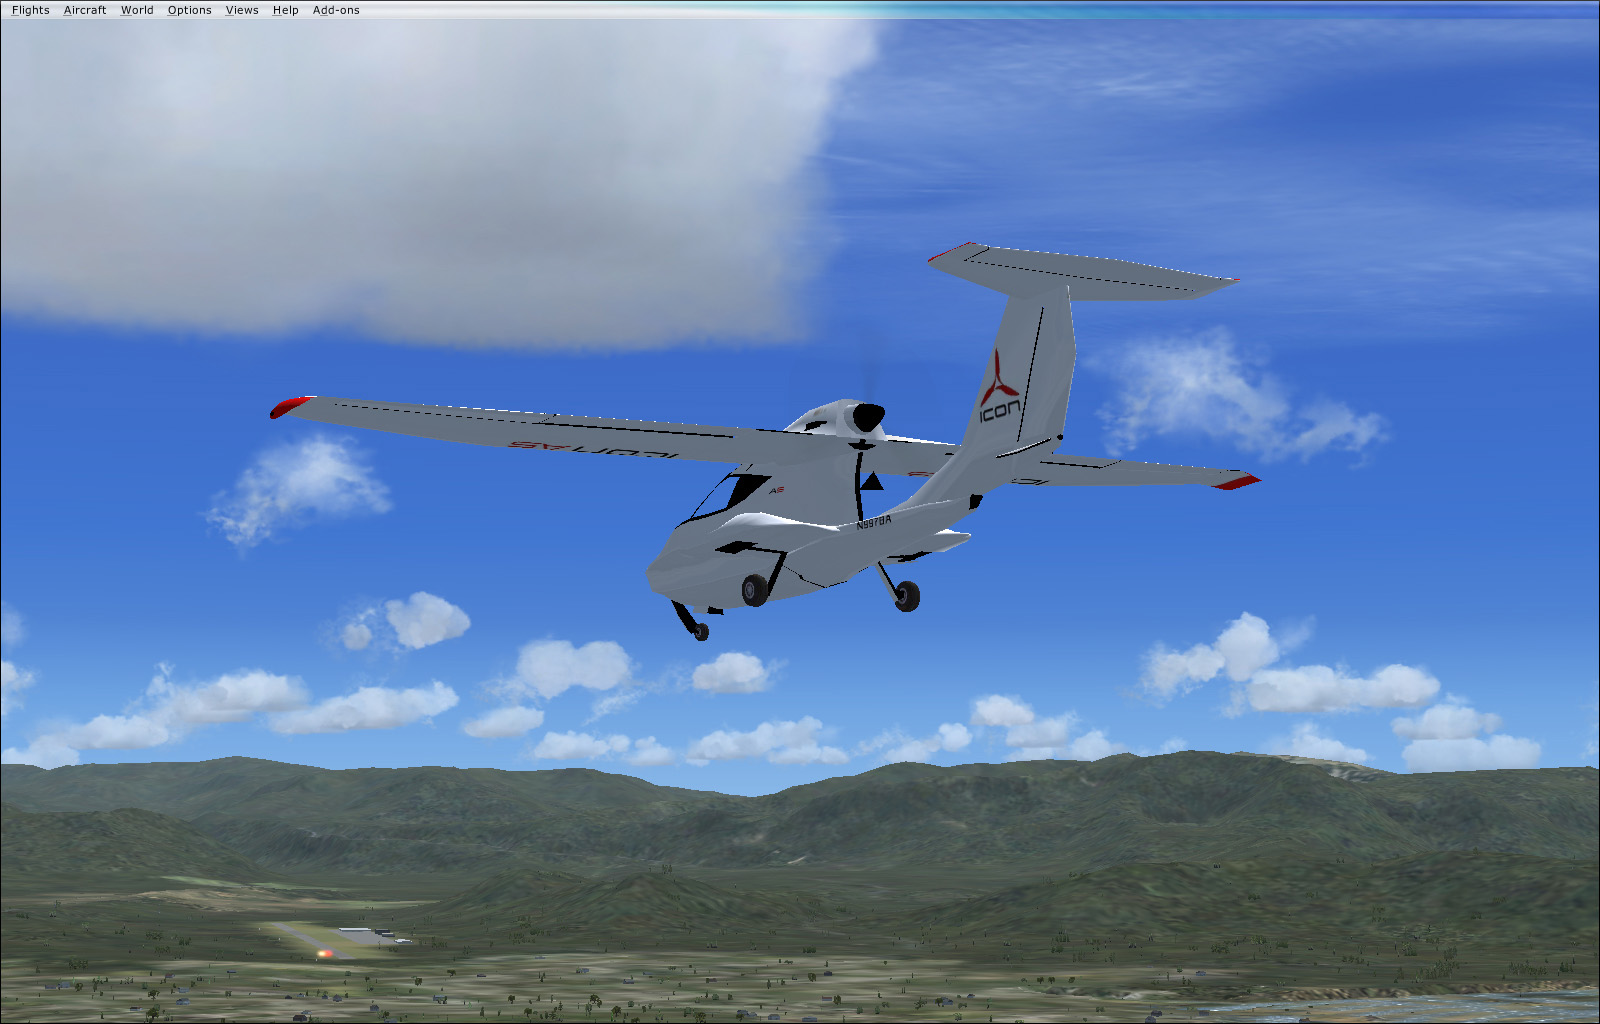 FSX - Icon A5, landing wheels down